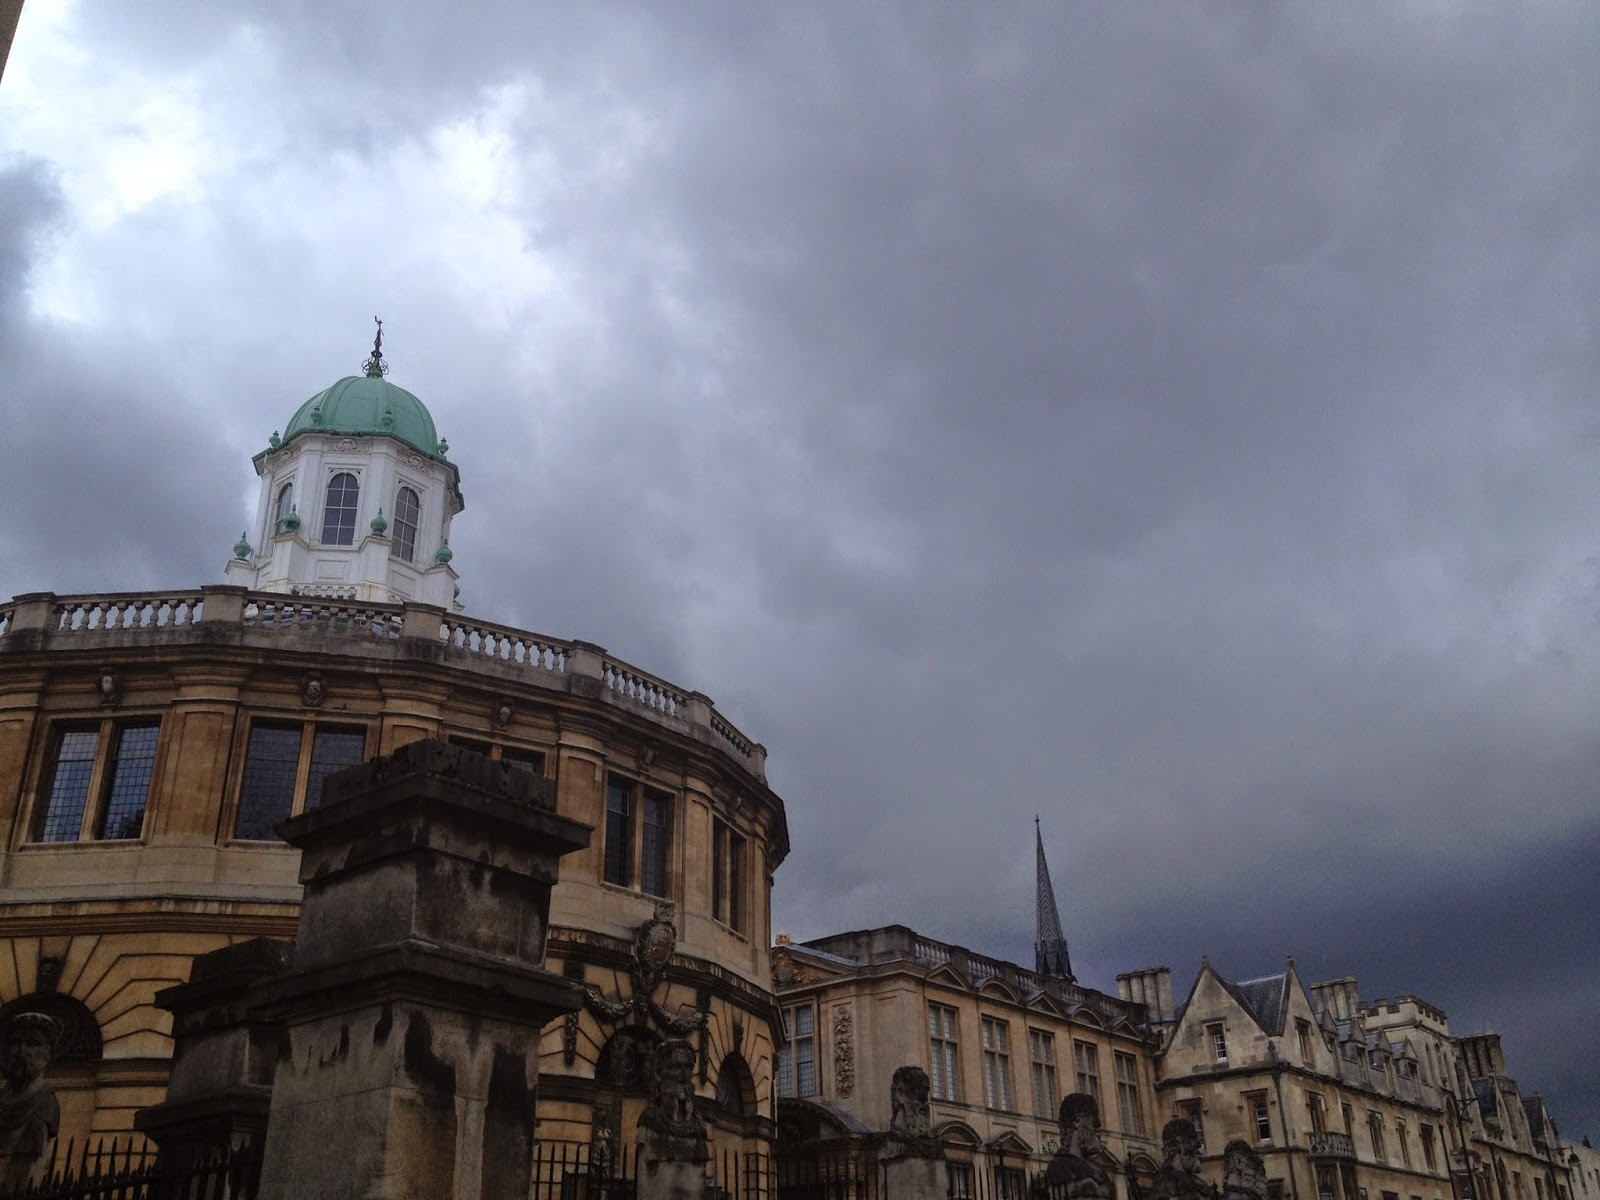 Sheldonian Oxford (photo credit: http://researchandramblings.blogspot.com/)